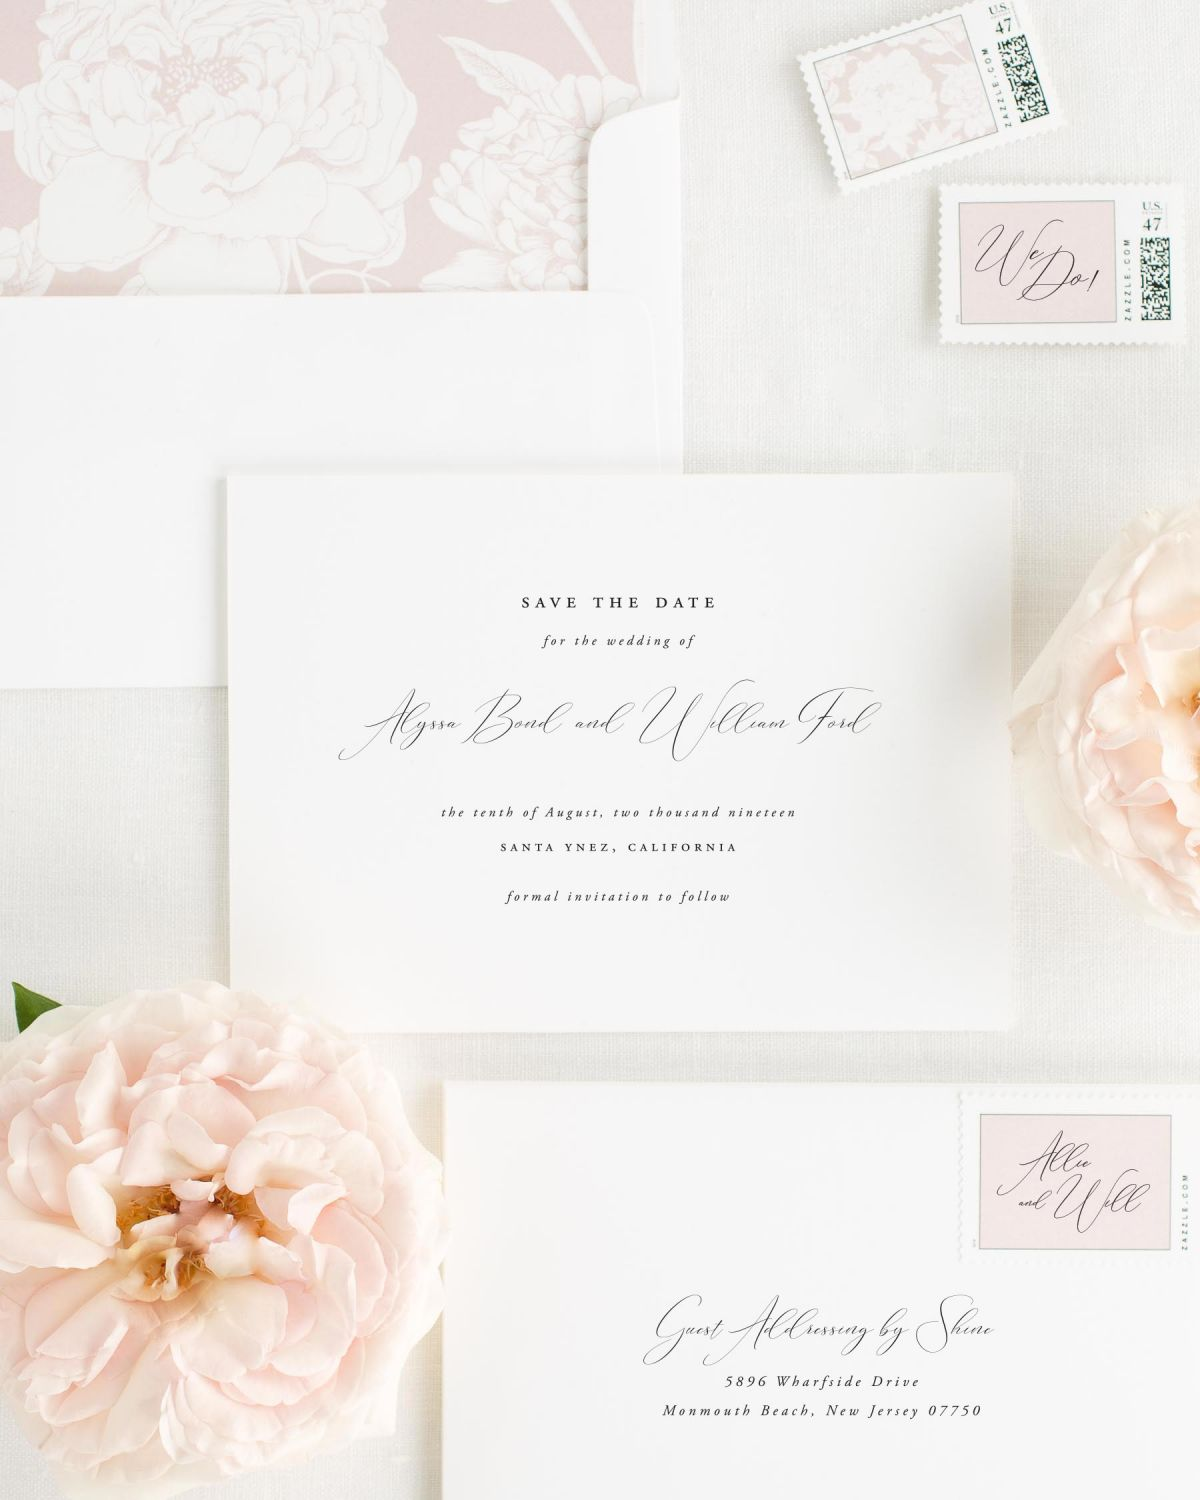 Save the Date with Vintage Blush Envelope Liner and Custom Stamps